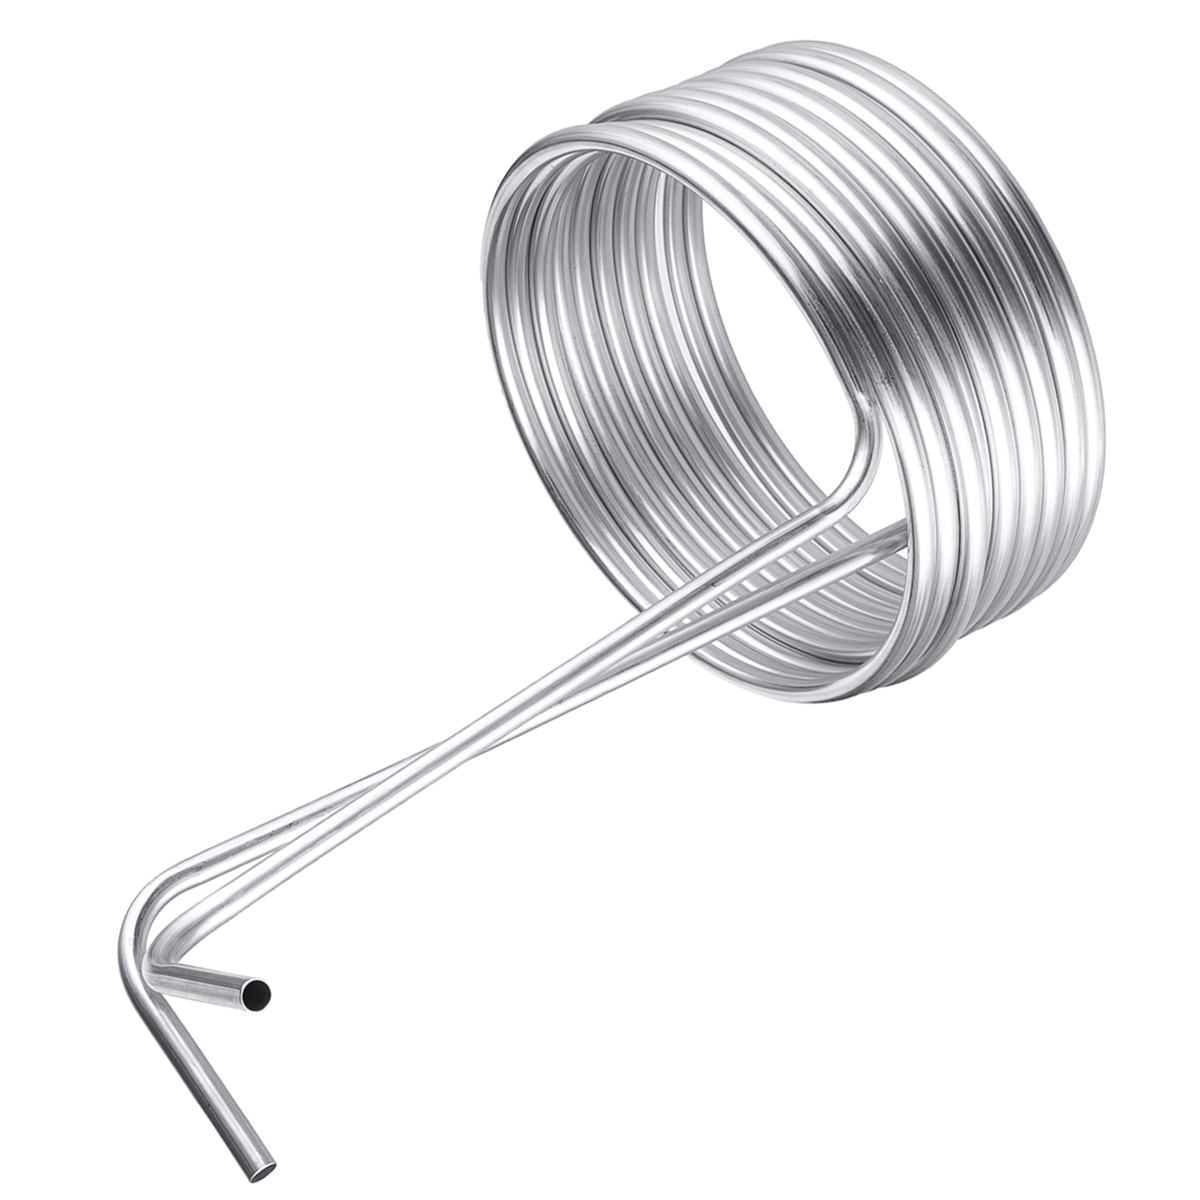 Super Efficient Stainless Steel Cooling Coil Home Kegerators Brewing Wort